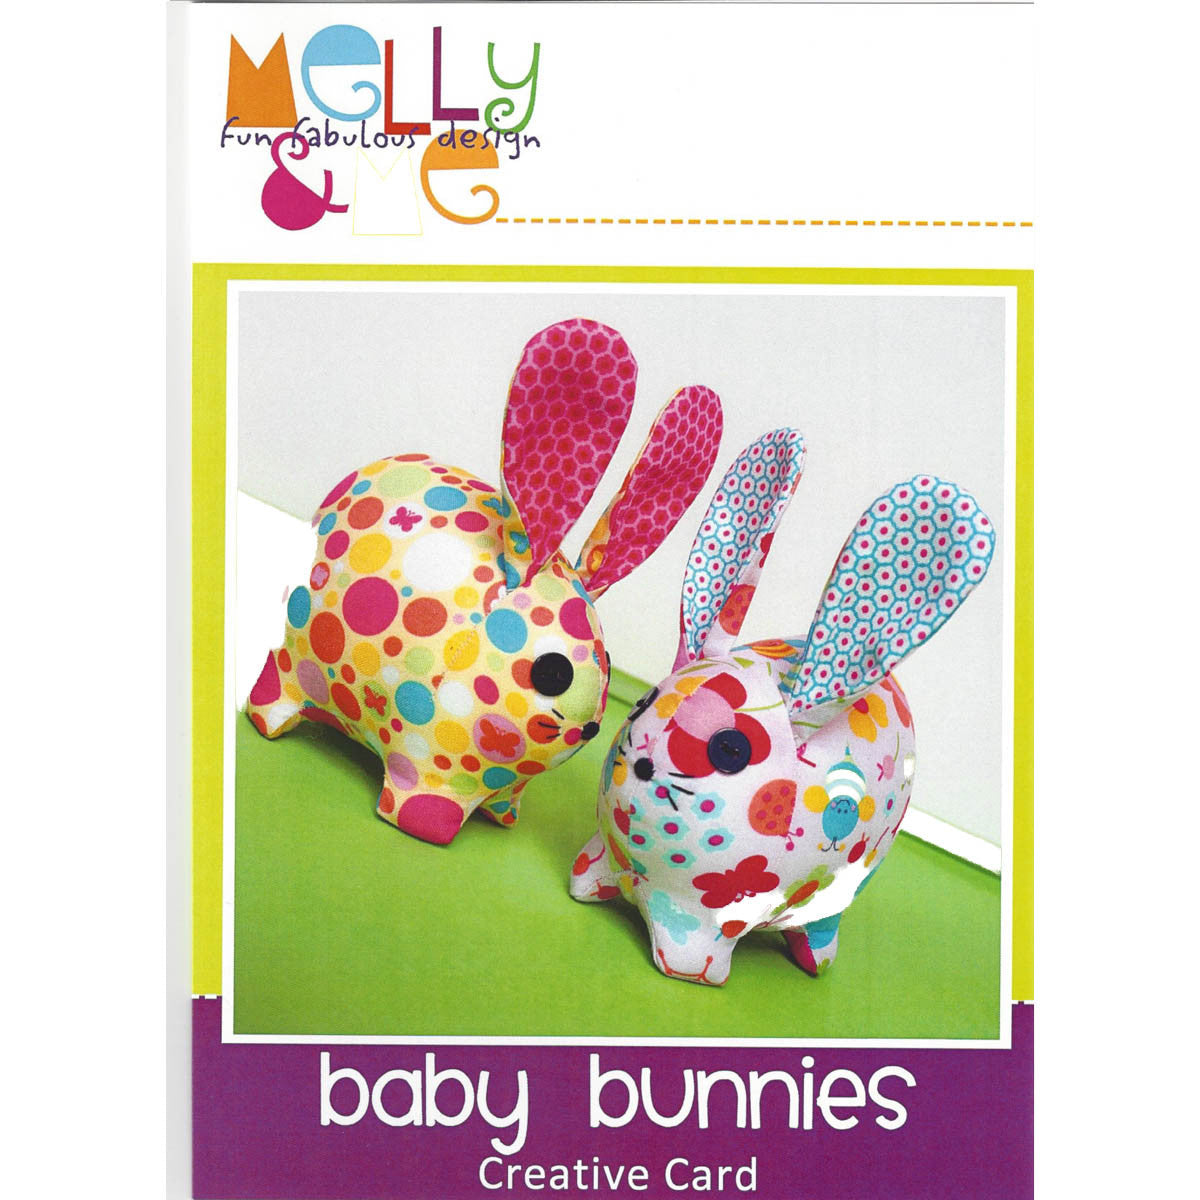 BABY BUNNIES - Creative Pattern Card - by Australian Designer Melanie McNeice for Melly & Me